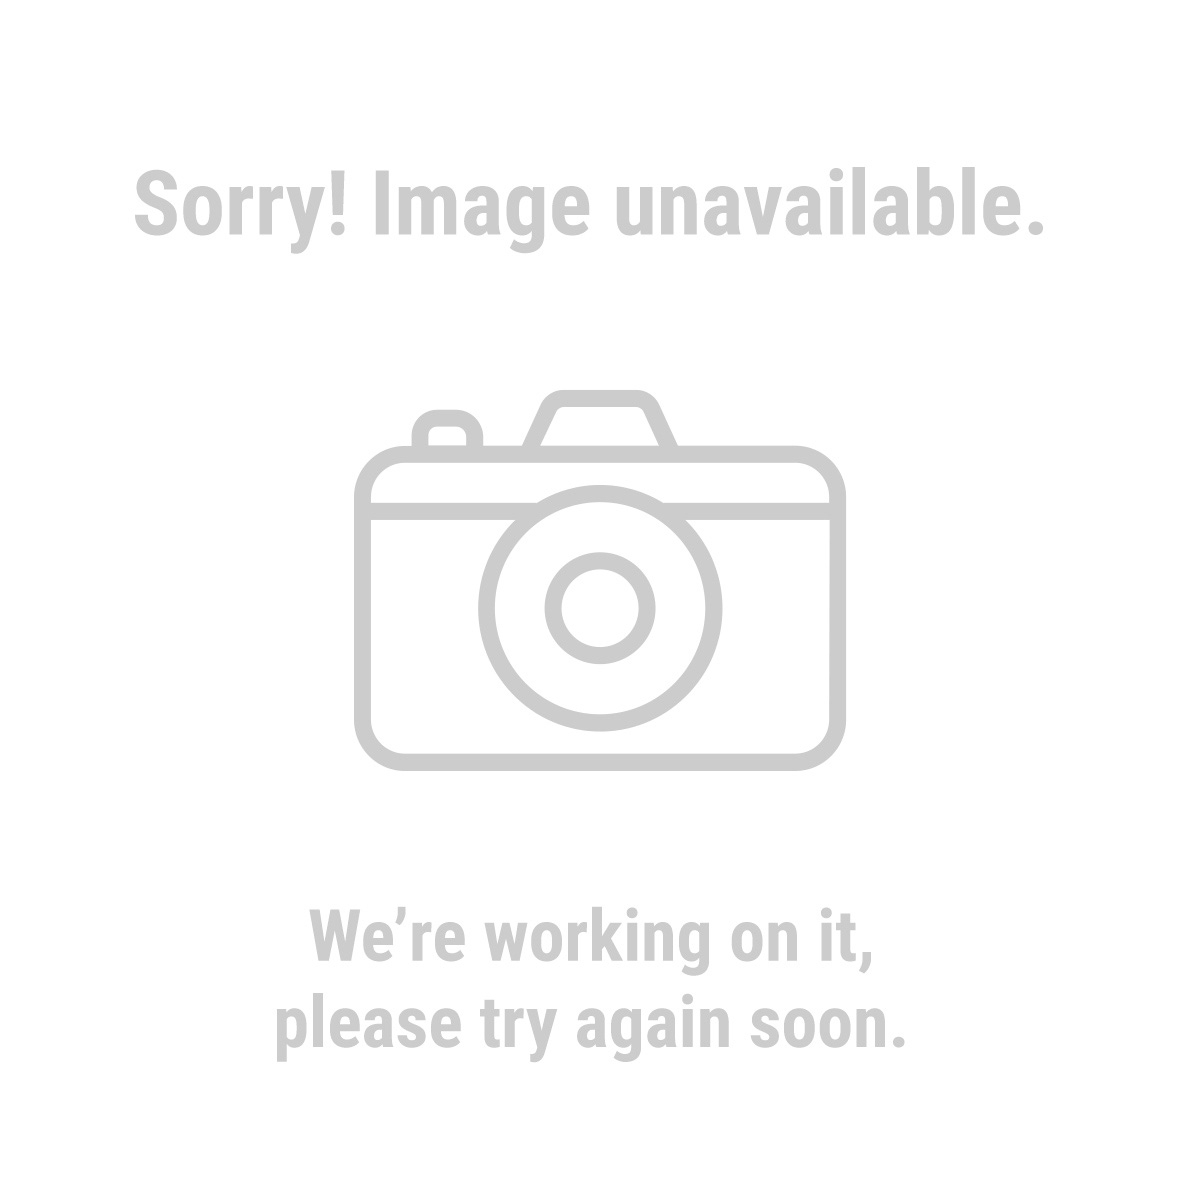 "Warrior® 69943 6 Piece 4-1/2"" x 5-1/2"" 150 Grit Sanding Sheets"